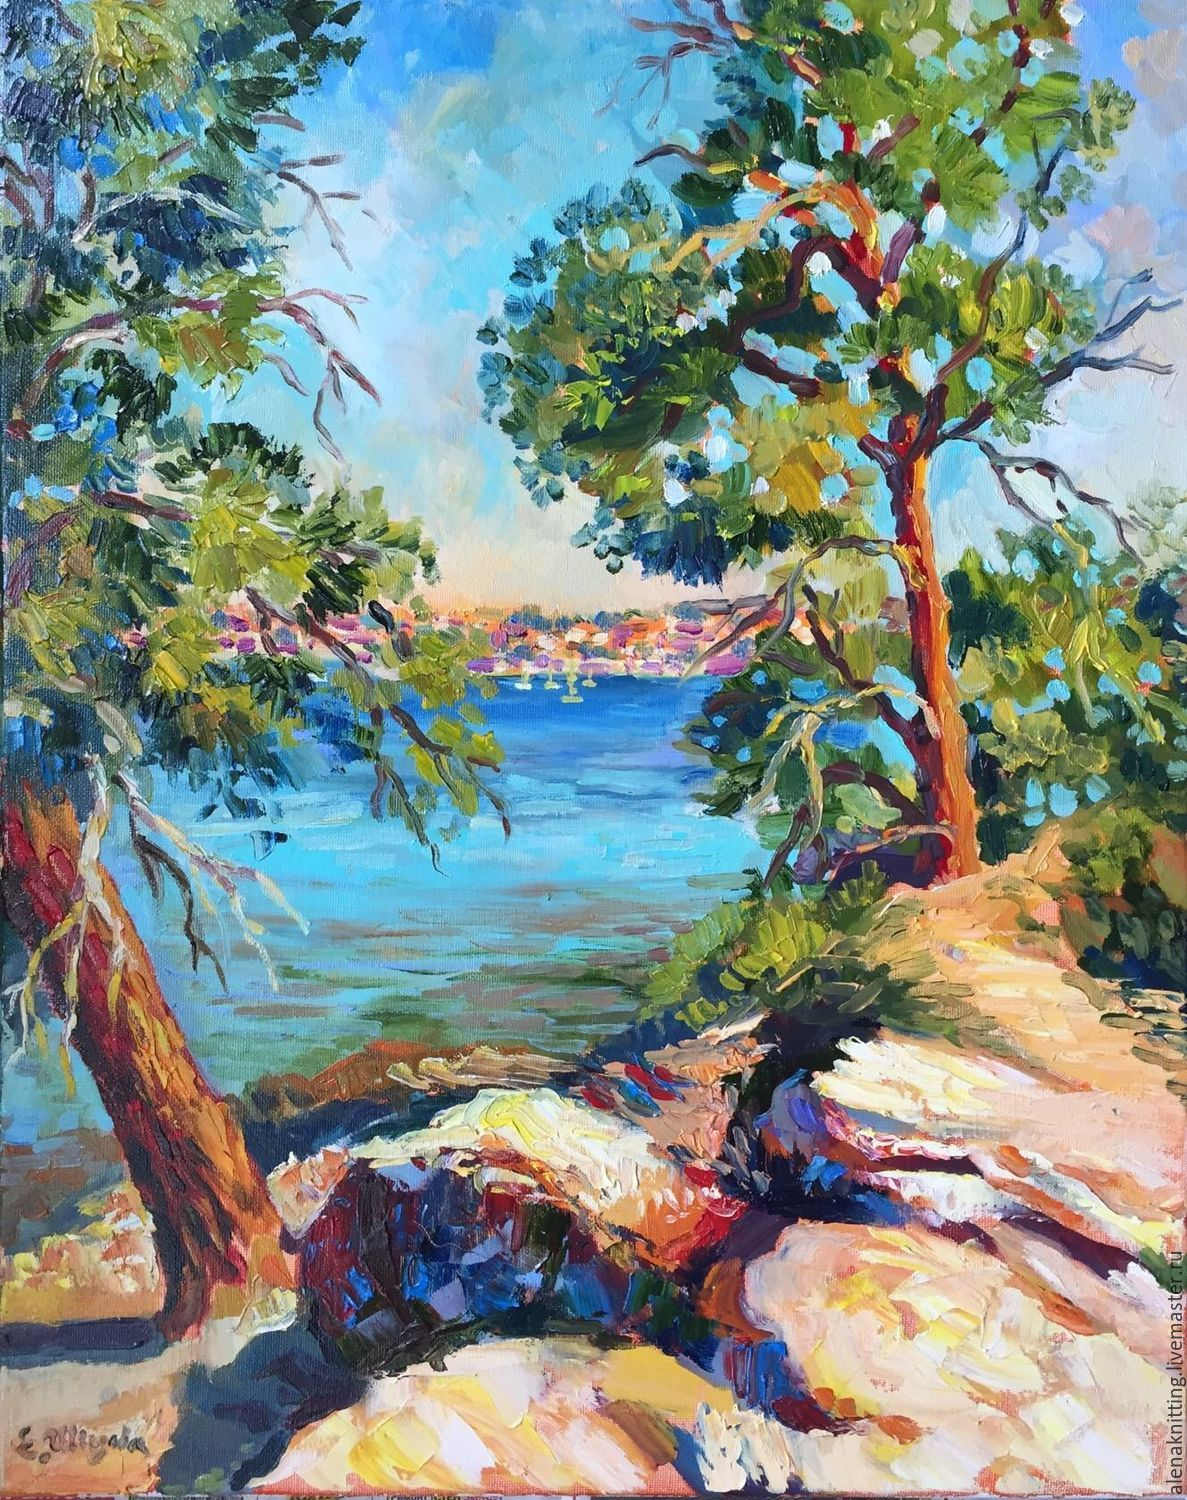 Elena Shvedova oil Painting ` On the shore of the Adriatic` 50h40, 2017.